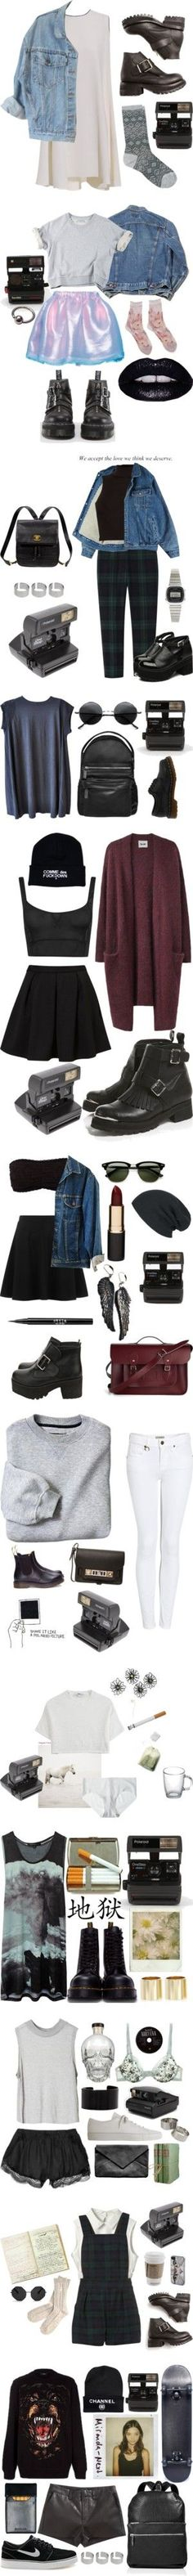 """Shootfits"" by froufrouu ❤ liked on Polyvore I want everything.... Pity I'm not cool enough to pull any of them off! :/"